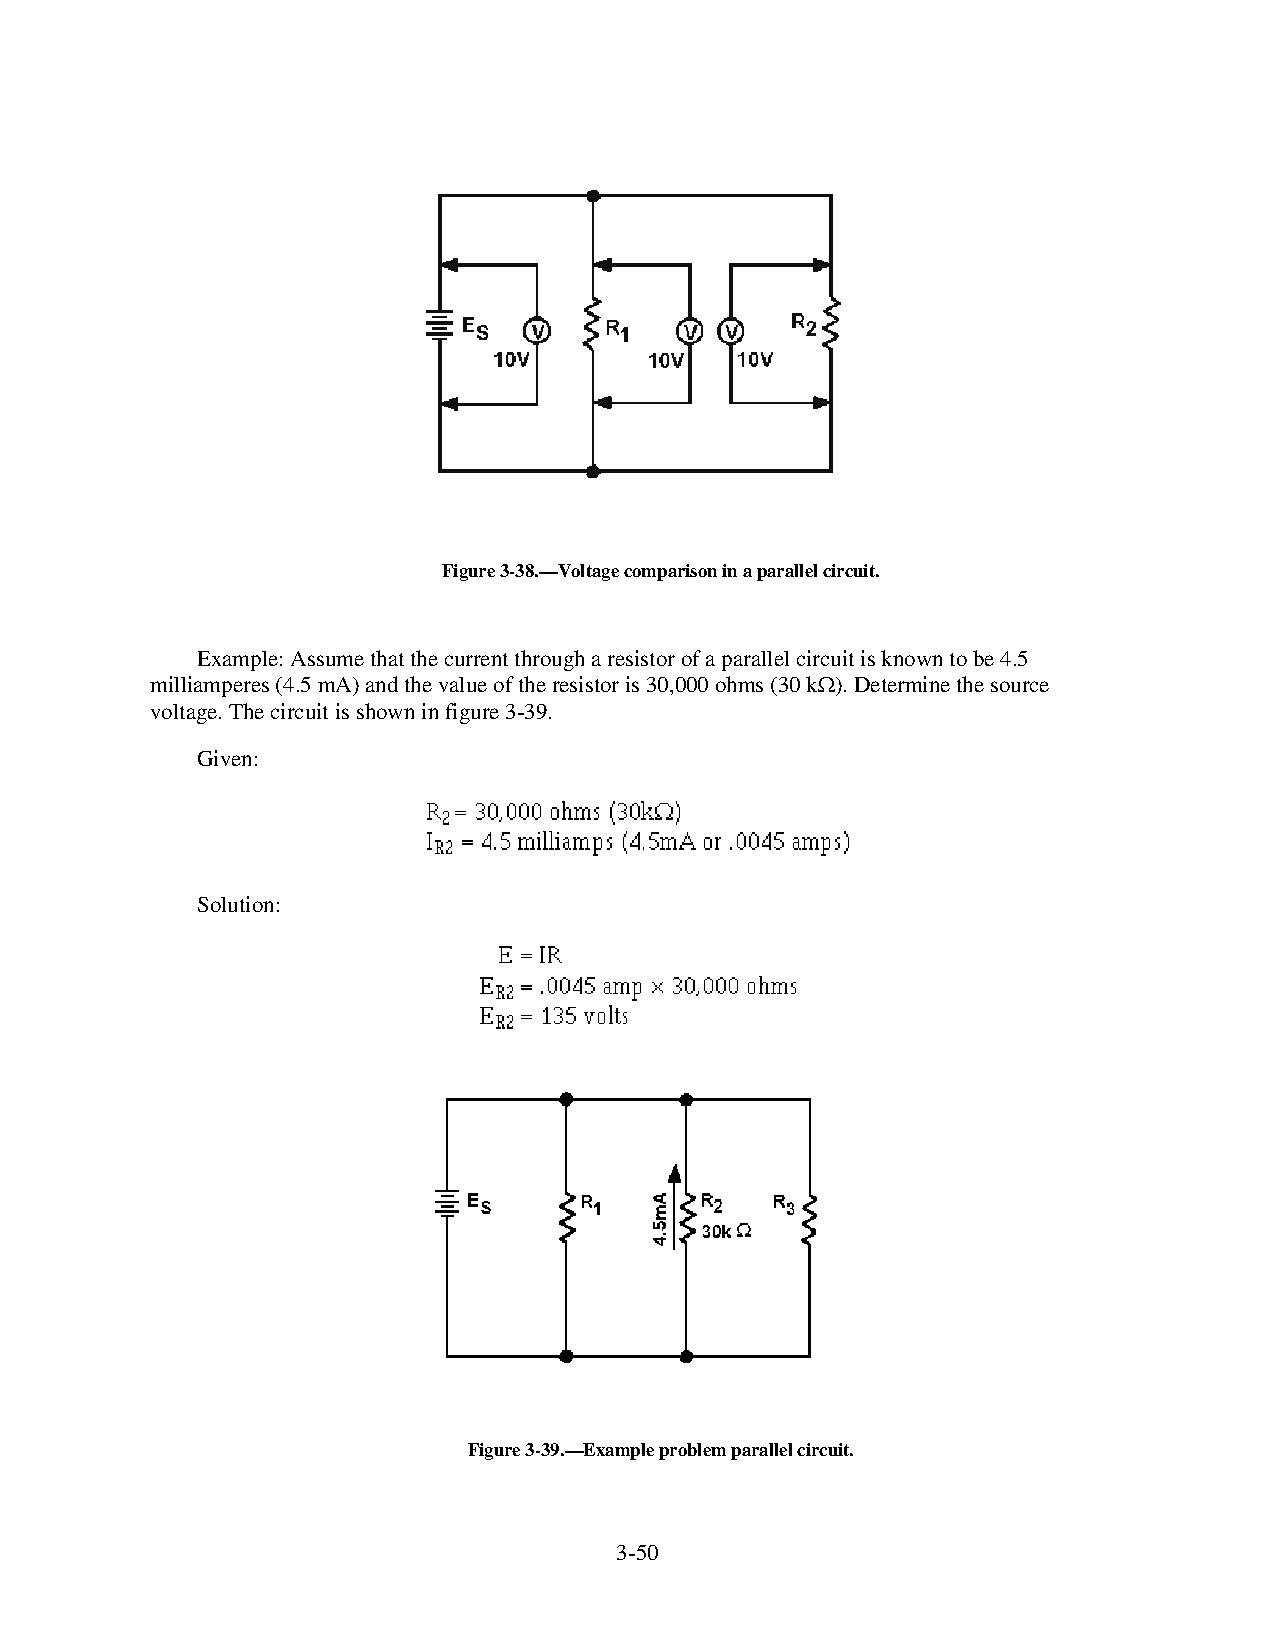 Voltage Figure 3 38 Comparison In A Parallel Circuit Attlsnavy Electricity And Electronics Training Series Introduction To Matter Energy Direct Currentpdf